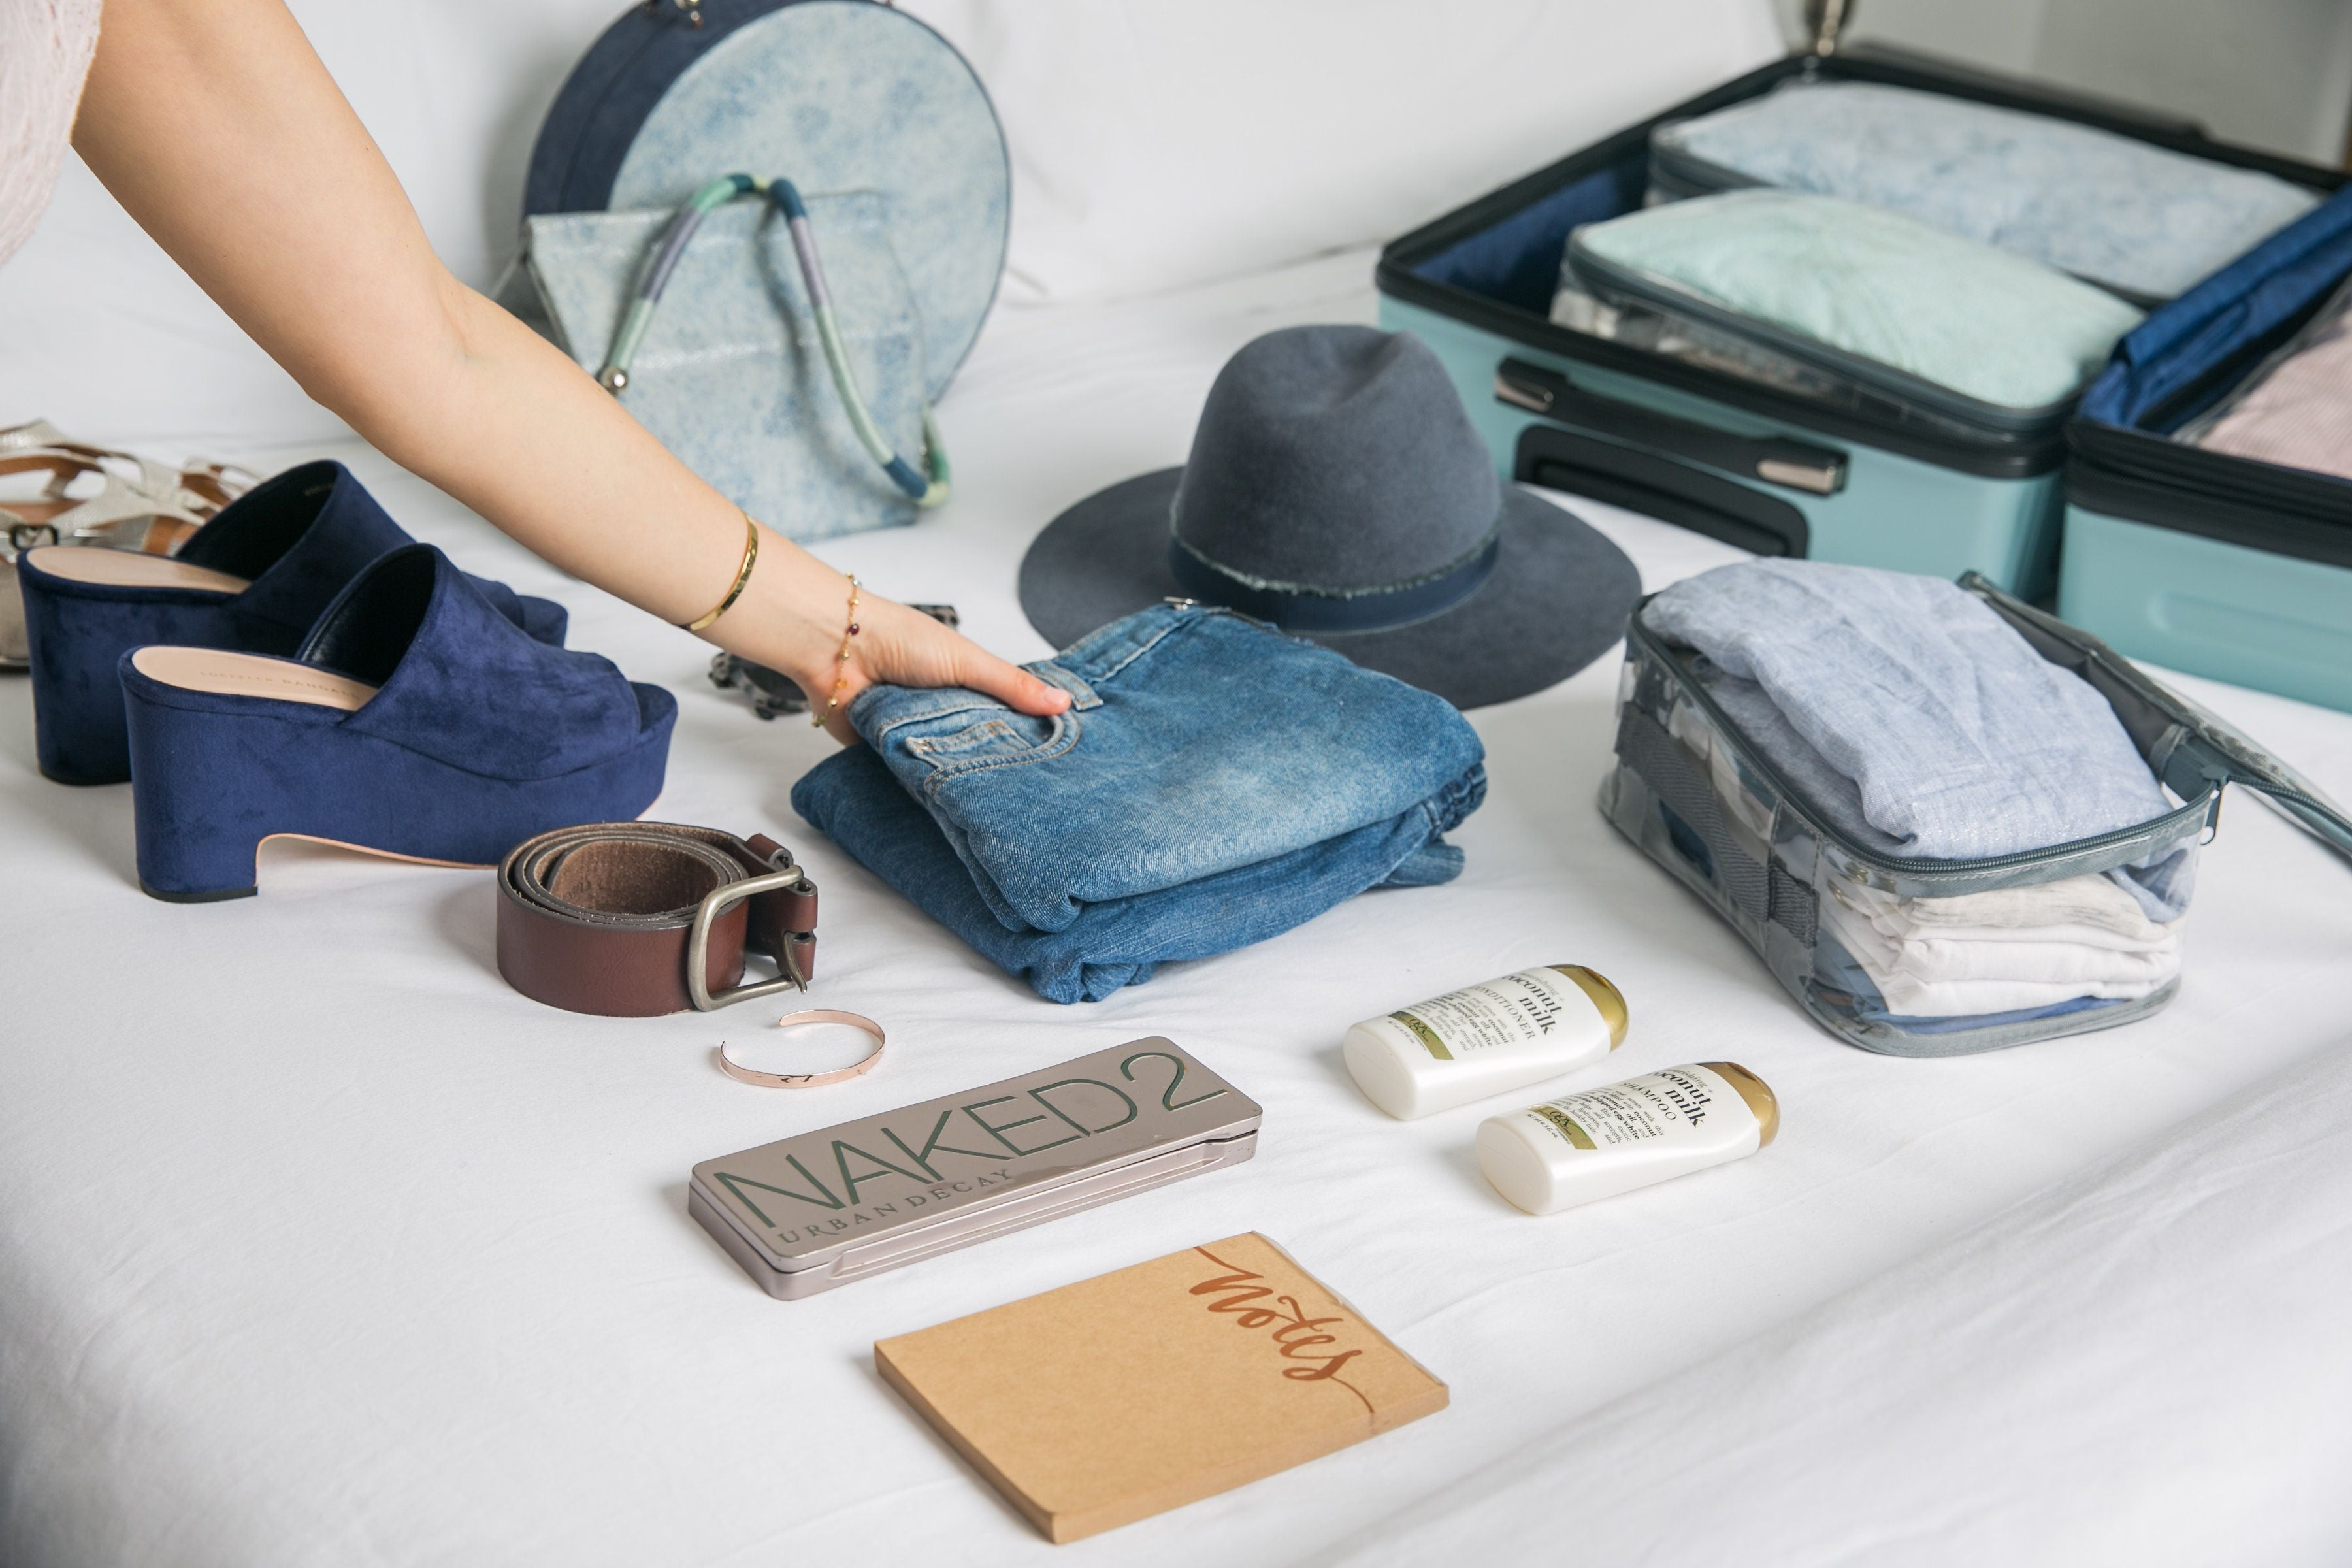 Travel essentials and jeans laid out on the bed with clear packing cubes